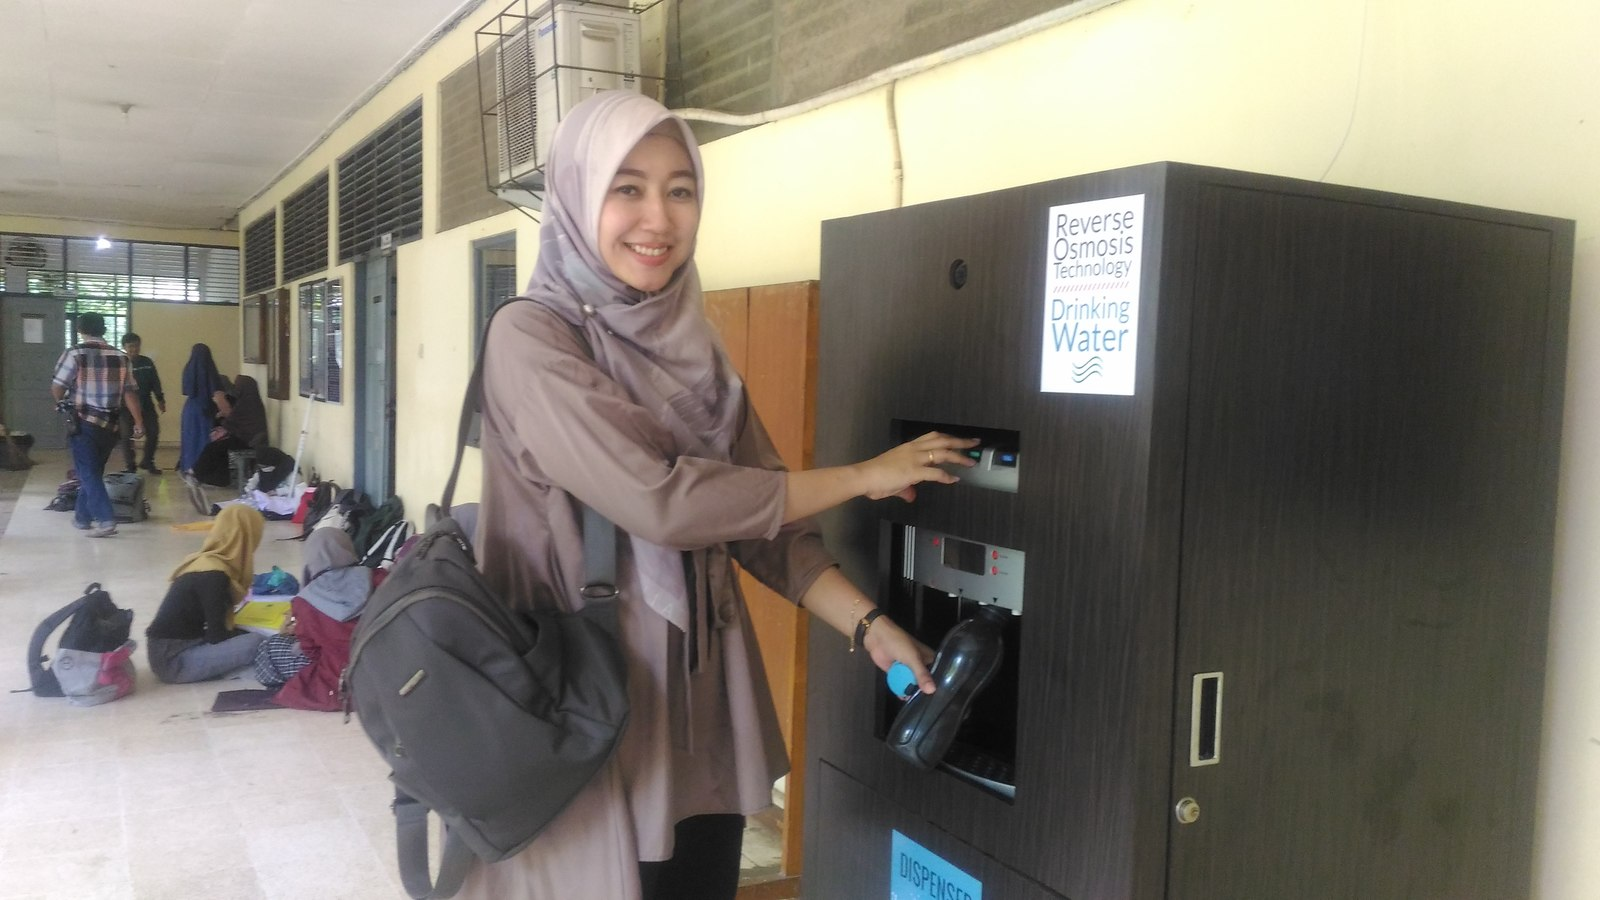 """Undip Vocations Enliven """"Piyaos"""" Culture Through Public Water Dispensers"""